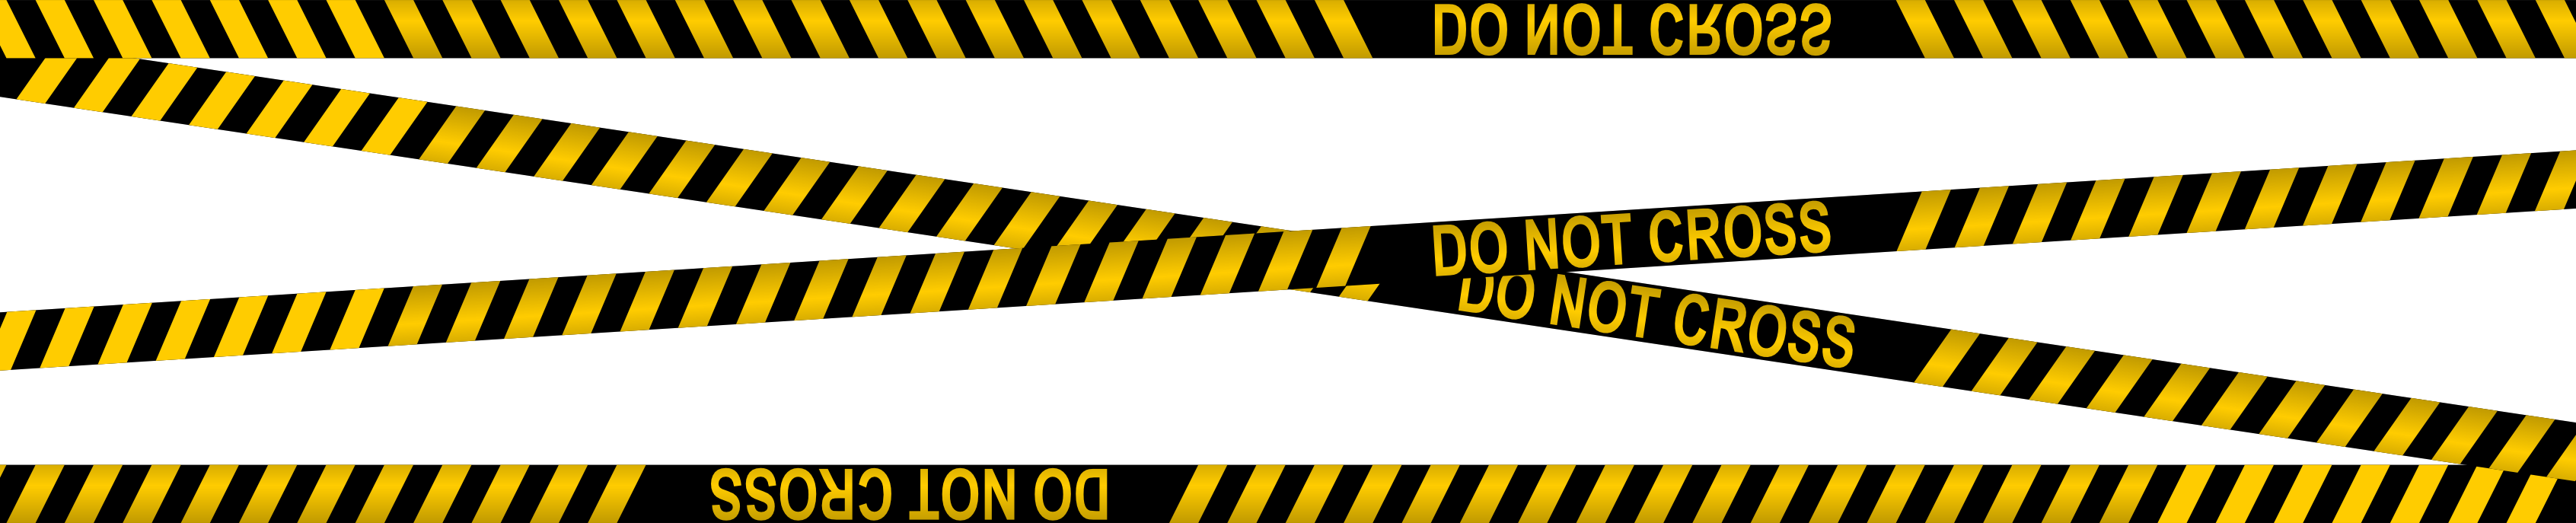 Police Line Do Not Cross Png - Police Line Do Not Cross Tapes (PNG Transparent) | OnlyGFX.com